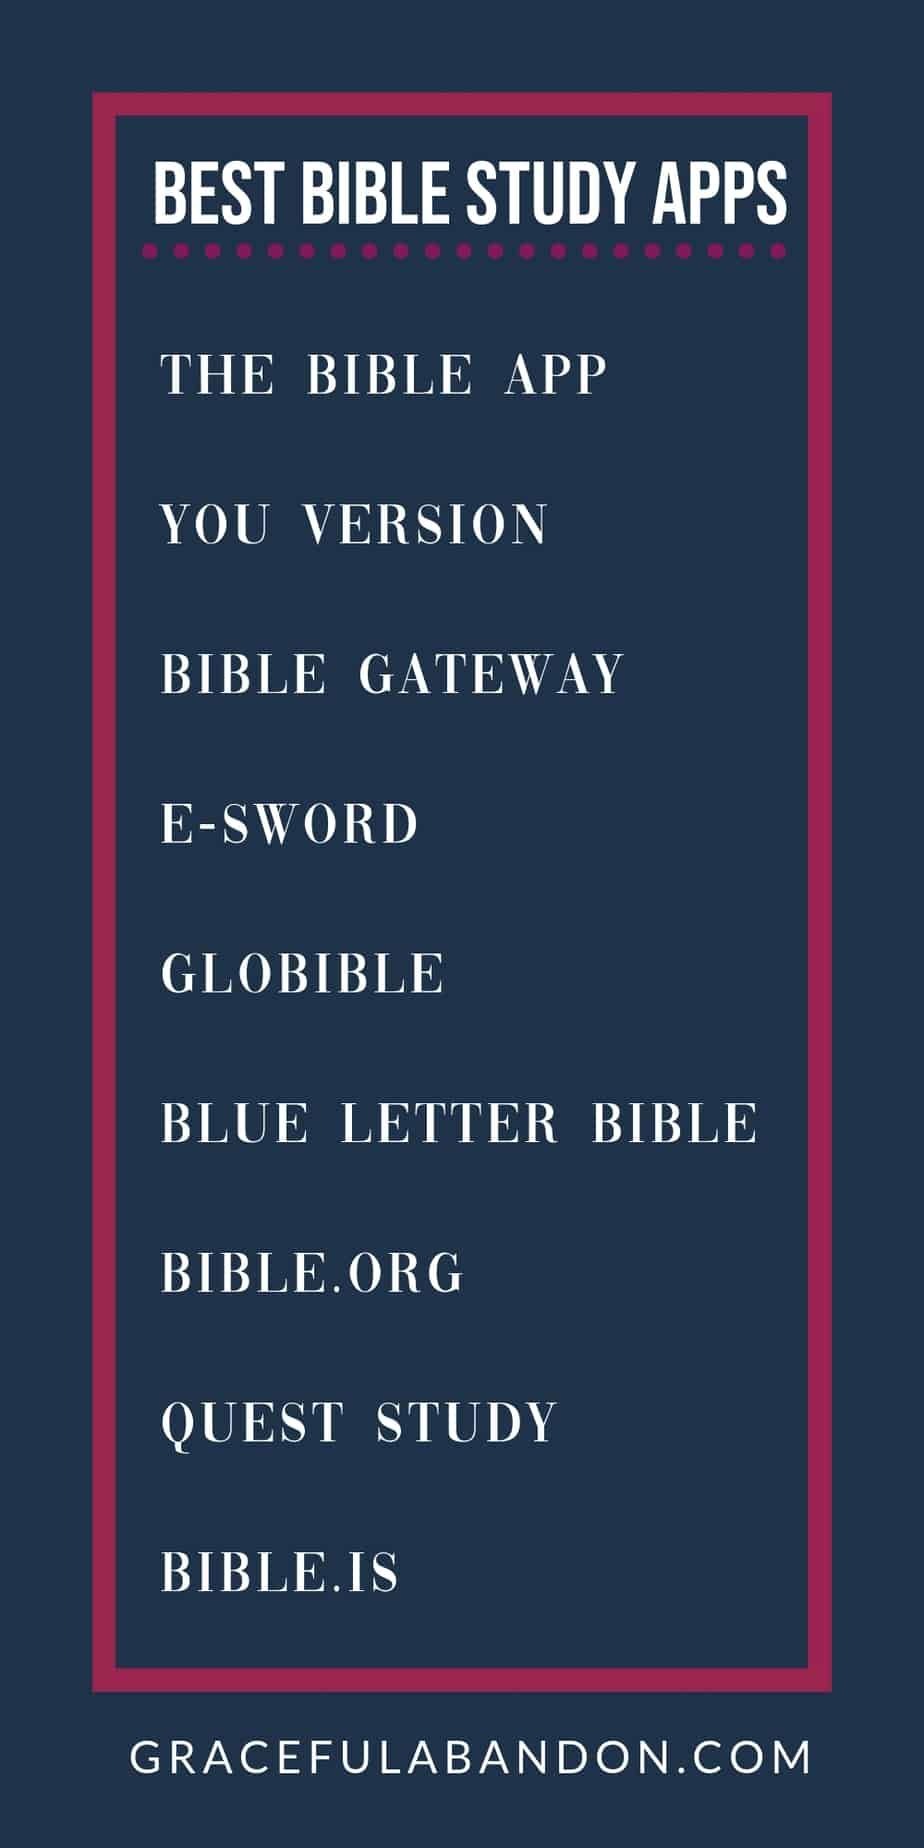 Best Bible Study Apps For Your Busy Life | The Best of Graceful